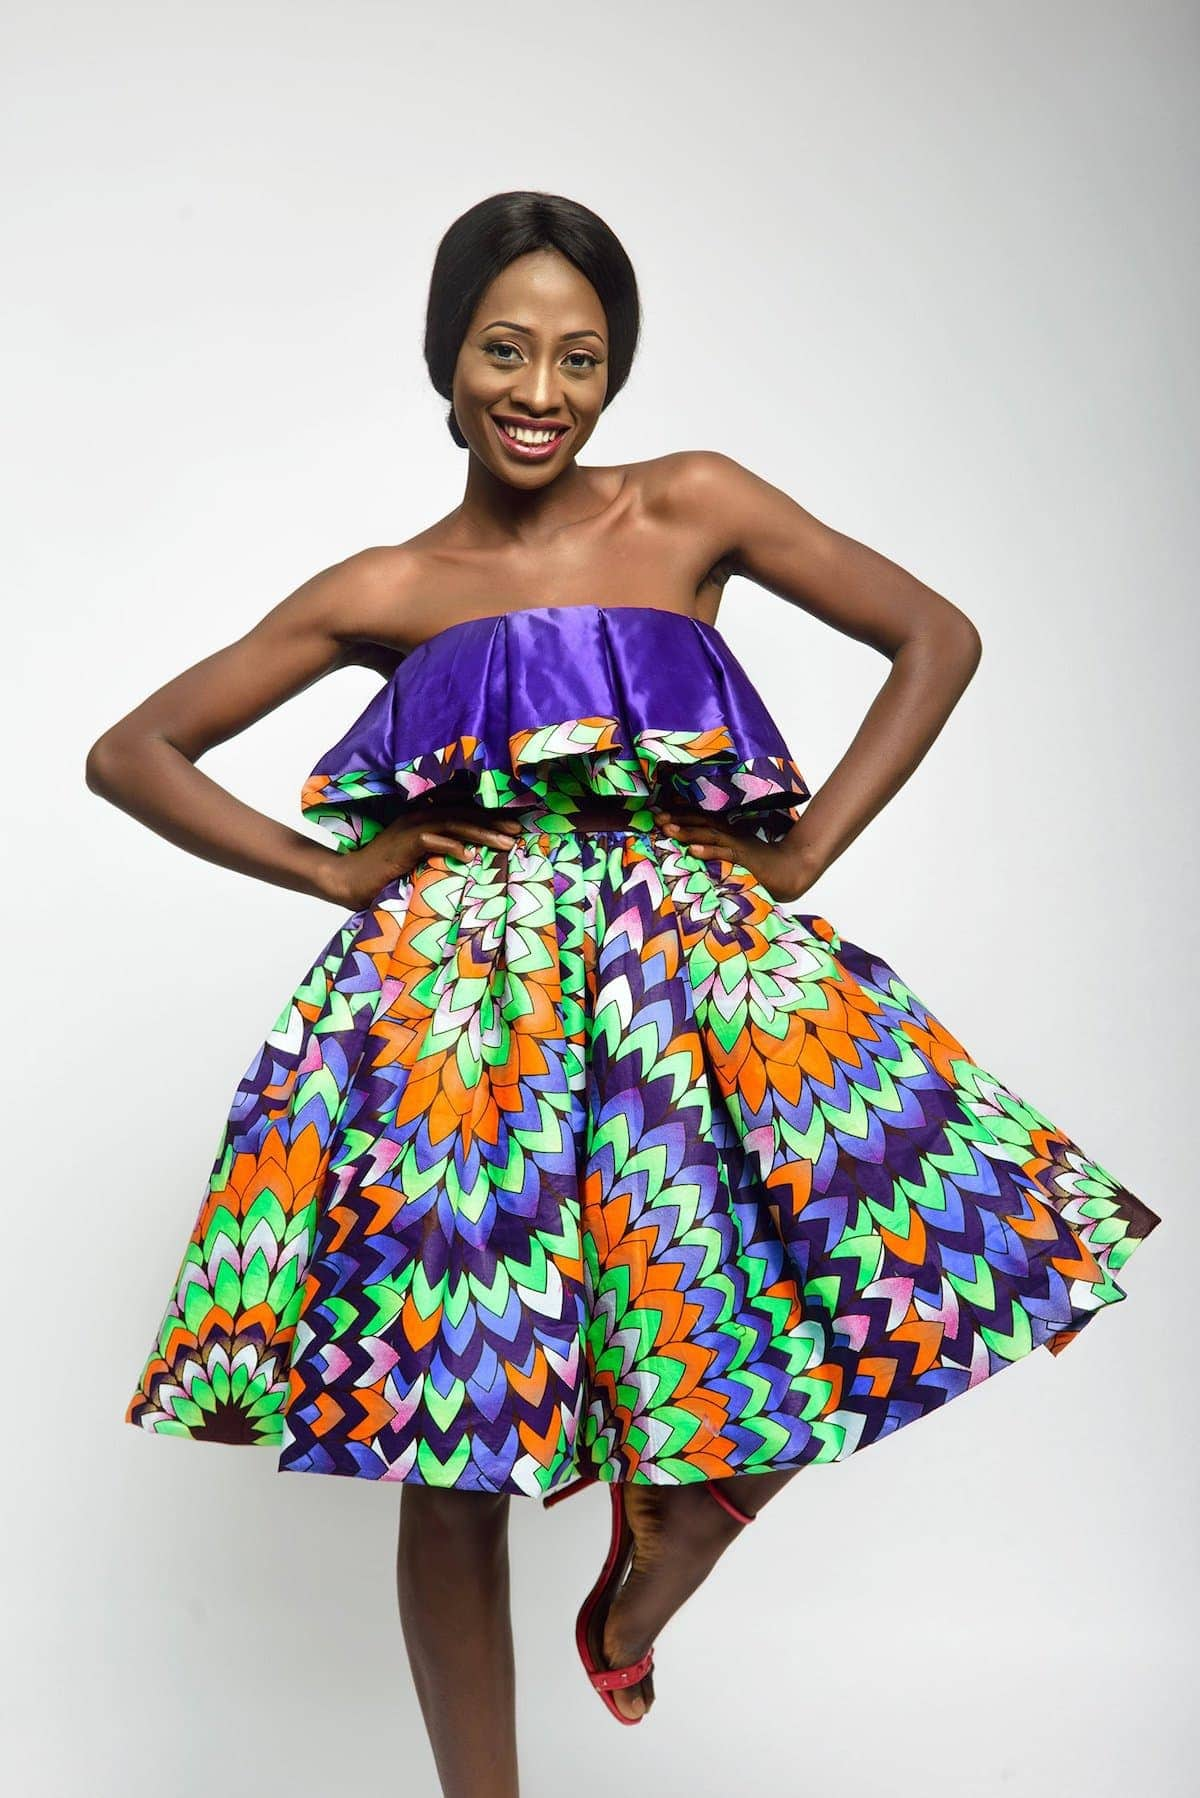 2b616354a5305 The best selection of over 50 best African print dresses for special  occasions. These dresses